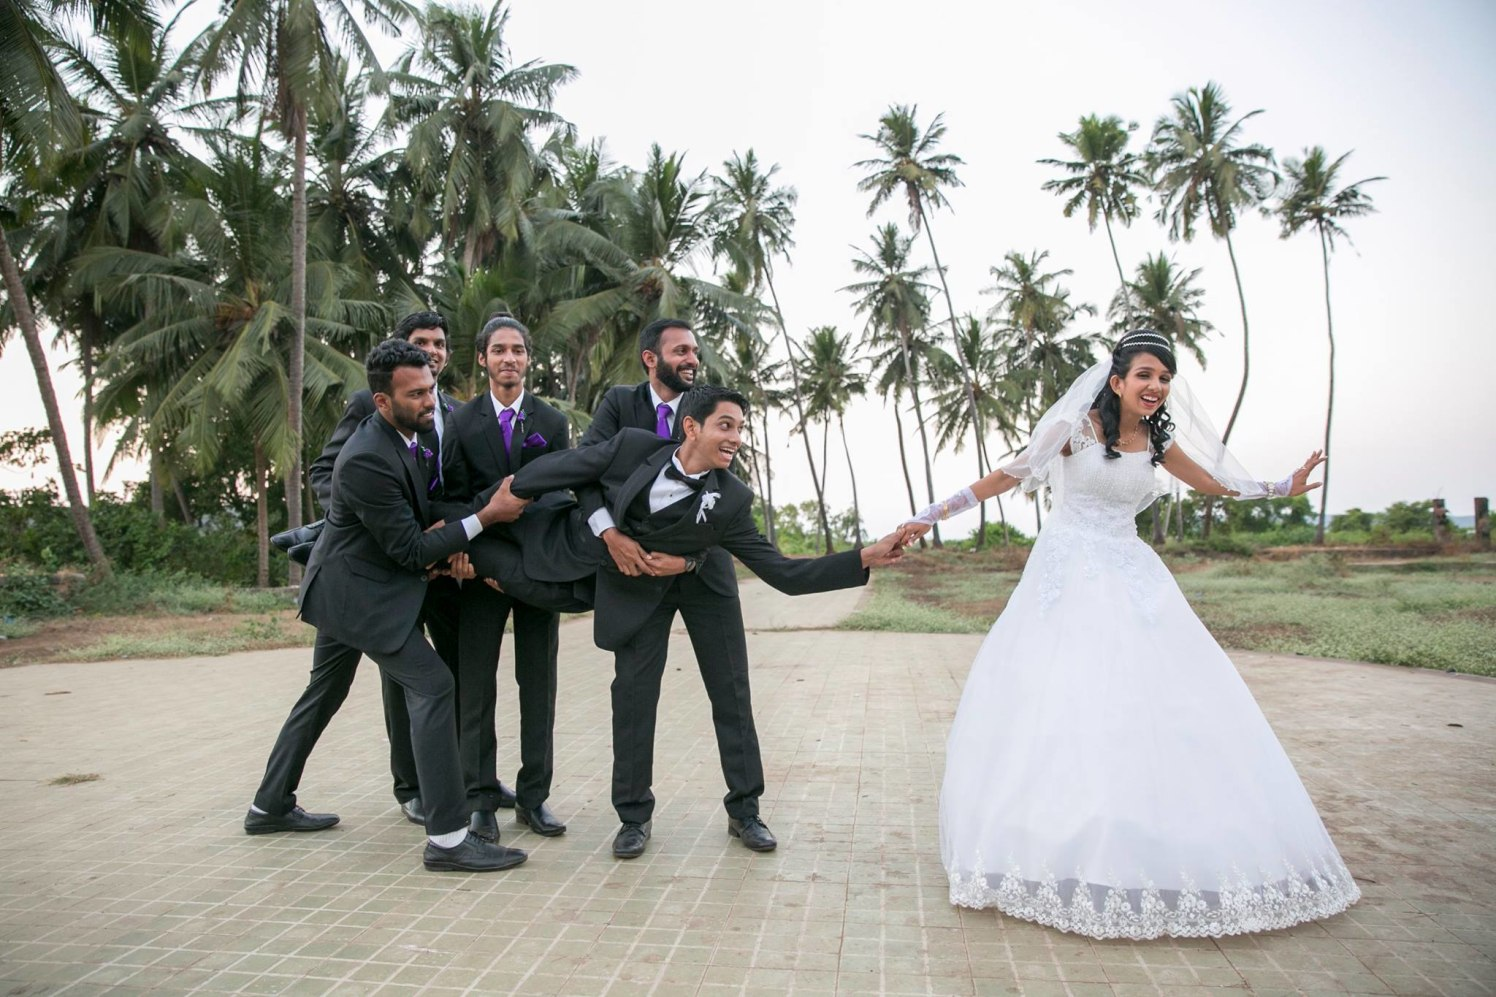 Fun Stylized Wedding Shoot With Groom's Squad And Bridegroom by Terence Savio Pimenta Wedding-photography | Weddings Photos & Ideas